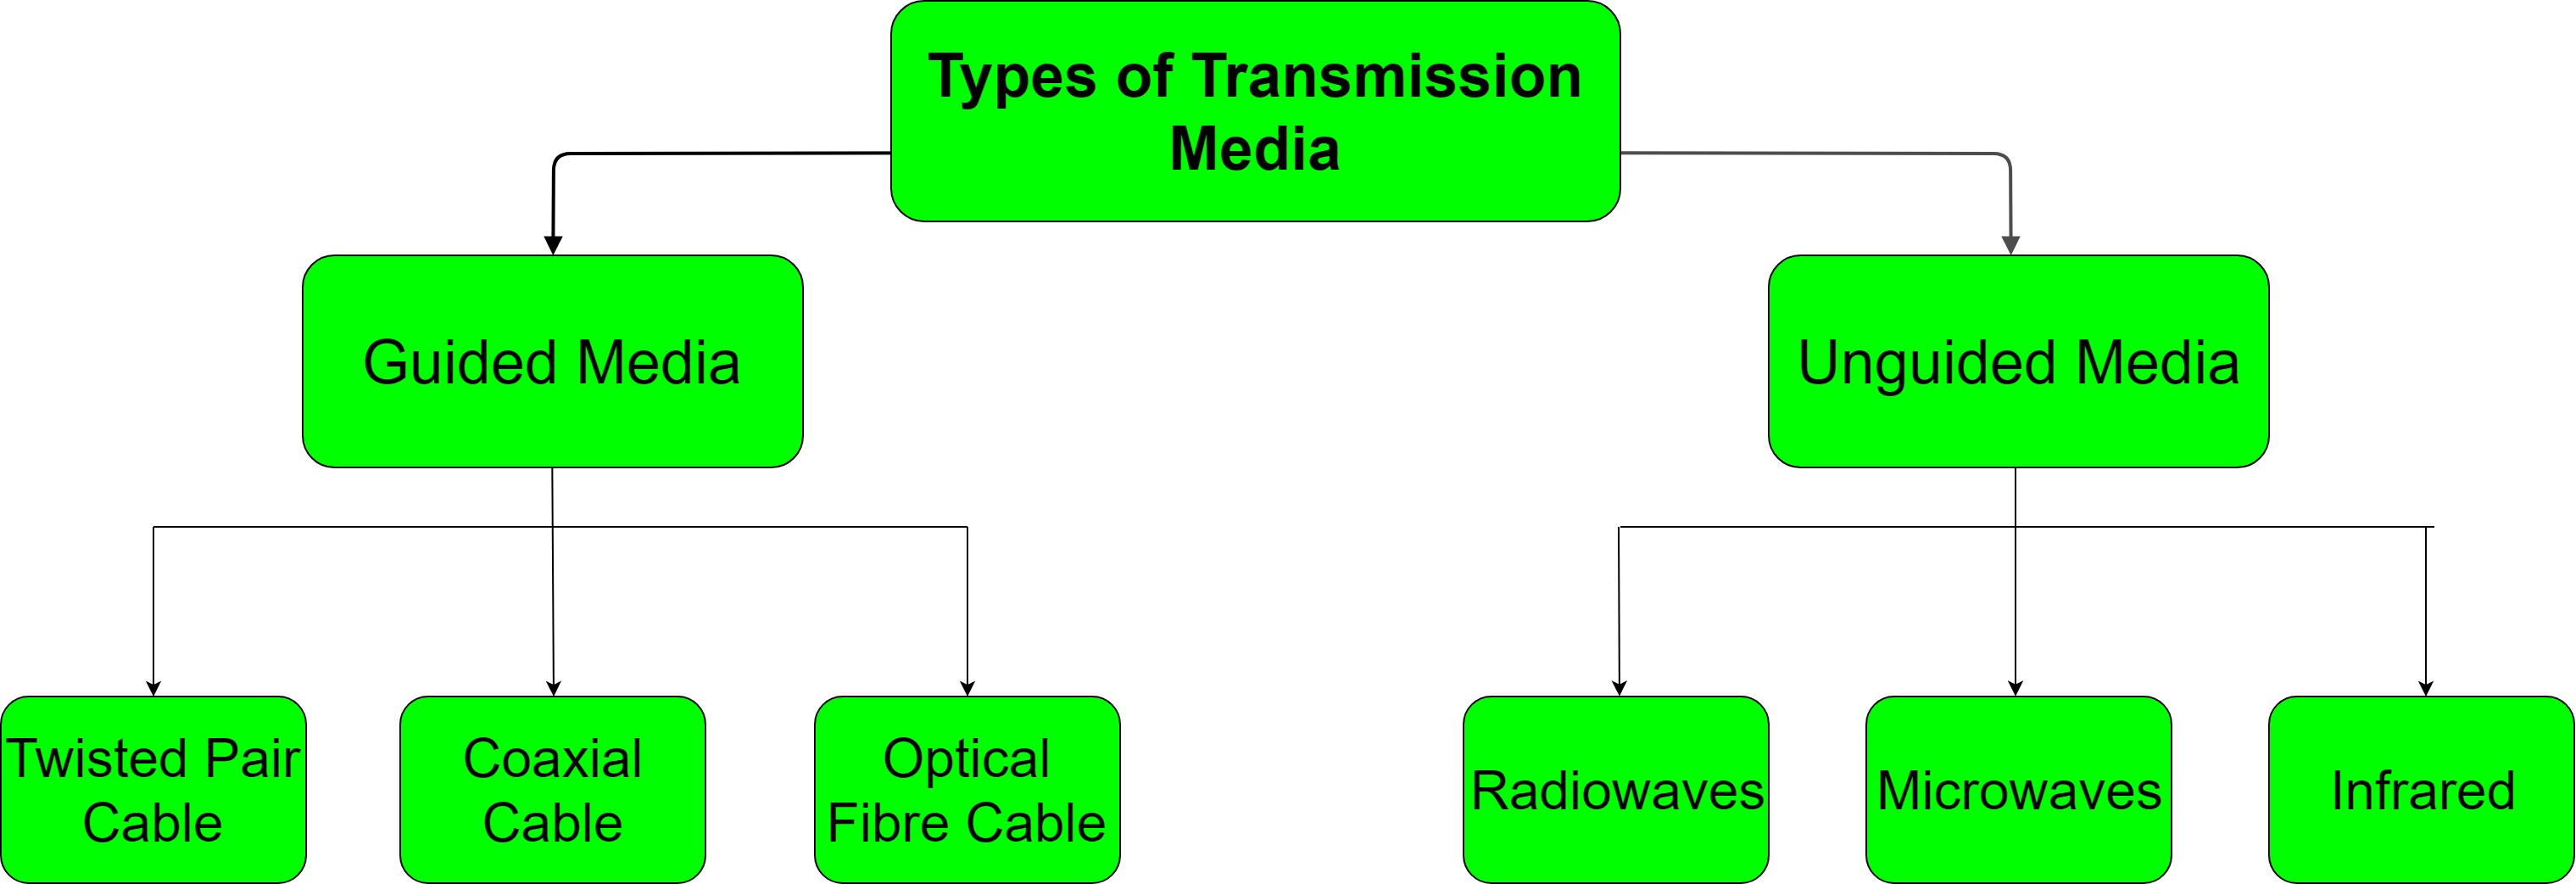 Types Of Transmission Media Geeksforgeeks Tv Aerial Wiring Diagram How To Split An Over The Air Antenna Signal It Is Also Referred As Wired Or Bounded Signals Being Transmitted Are Directed And Confined In A Narrow Pathway By Using Physical